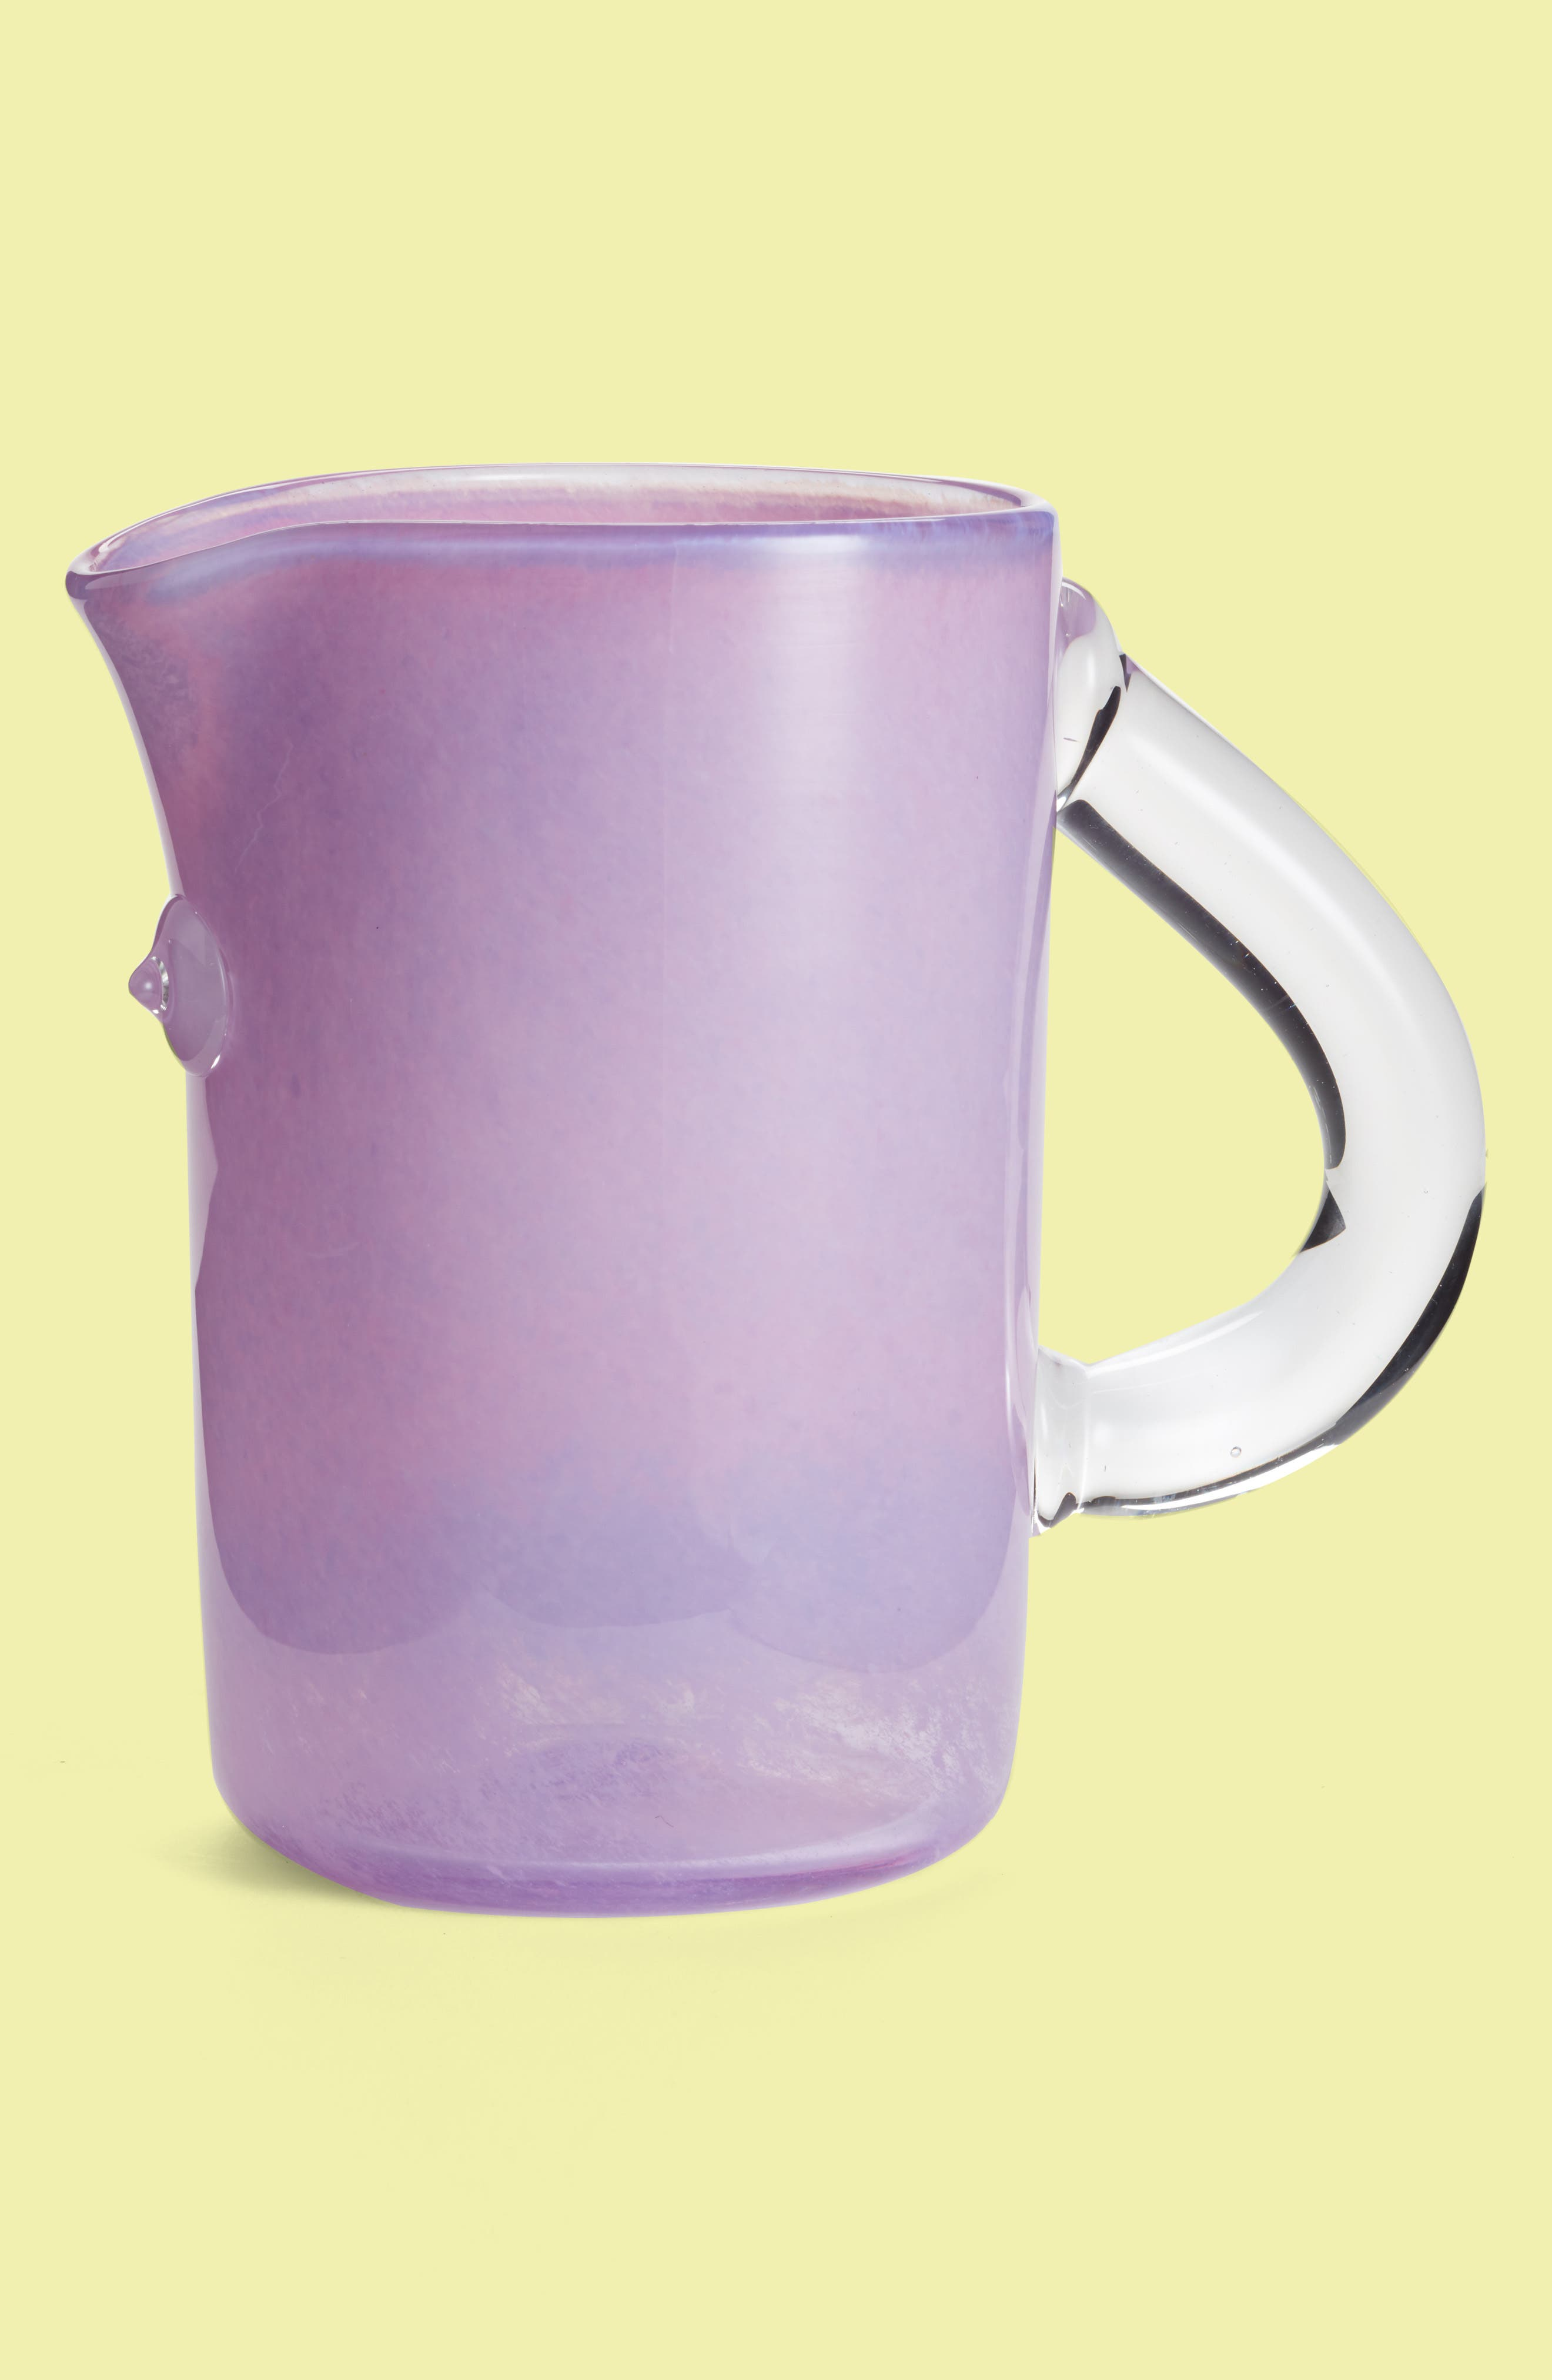 Asp & Hand Tube Pitcher,                             Main thumbnail 1, color,                             530